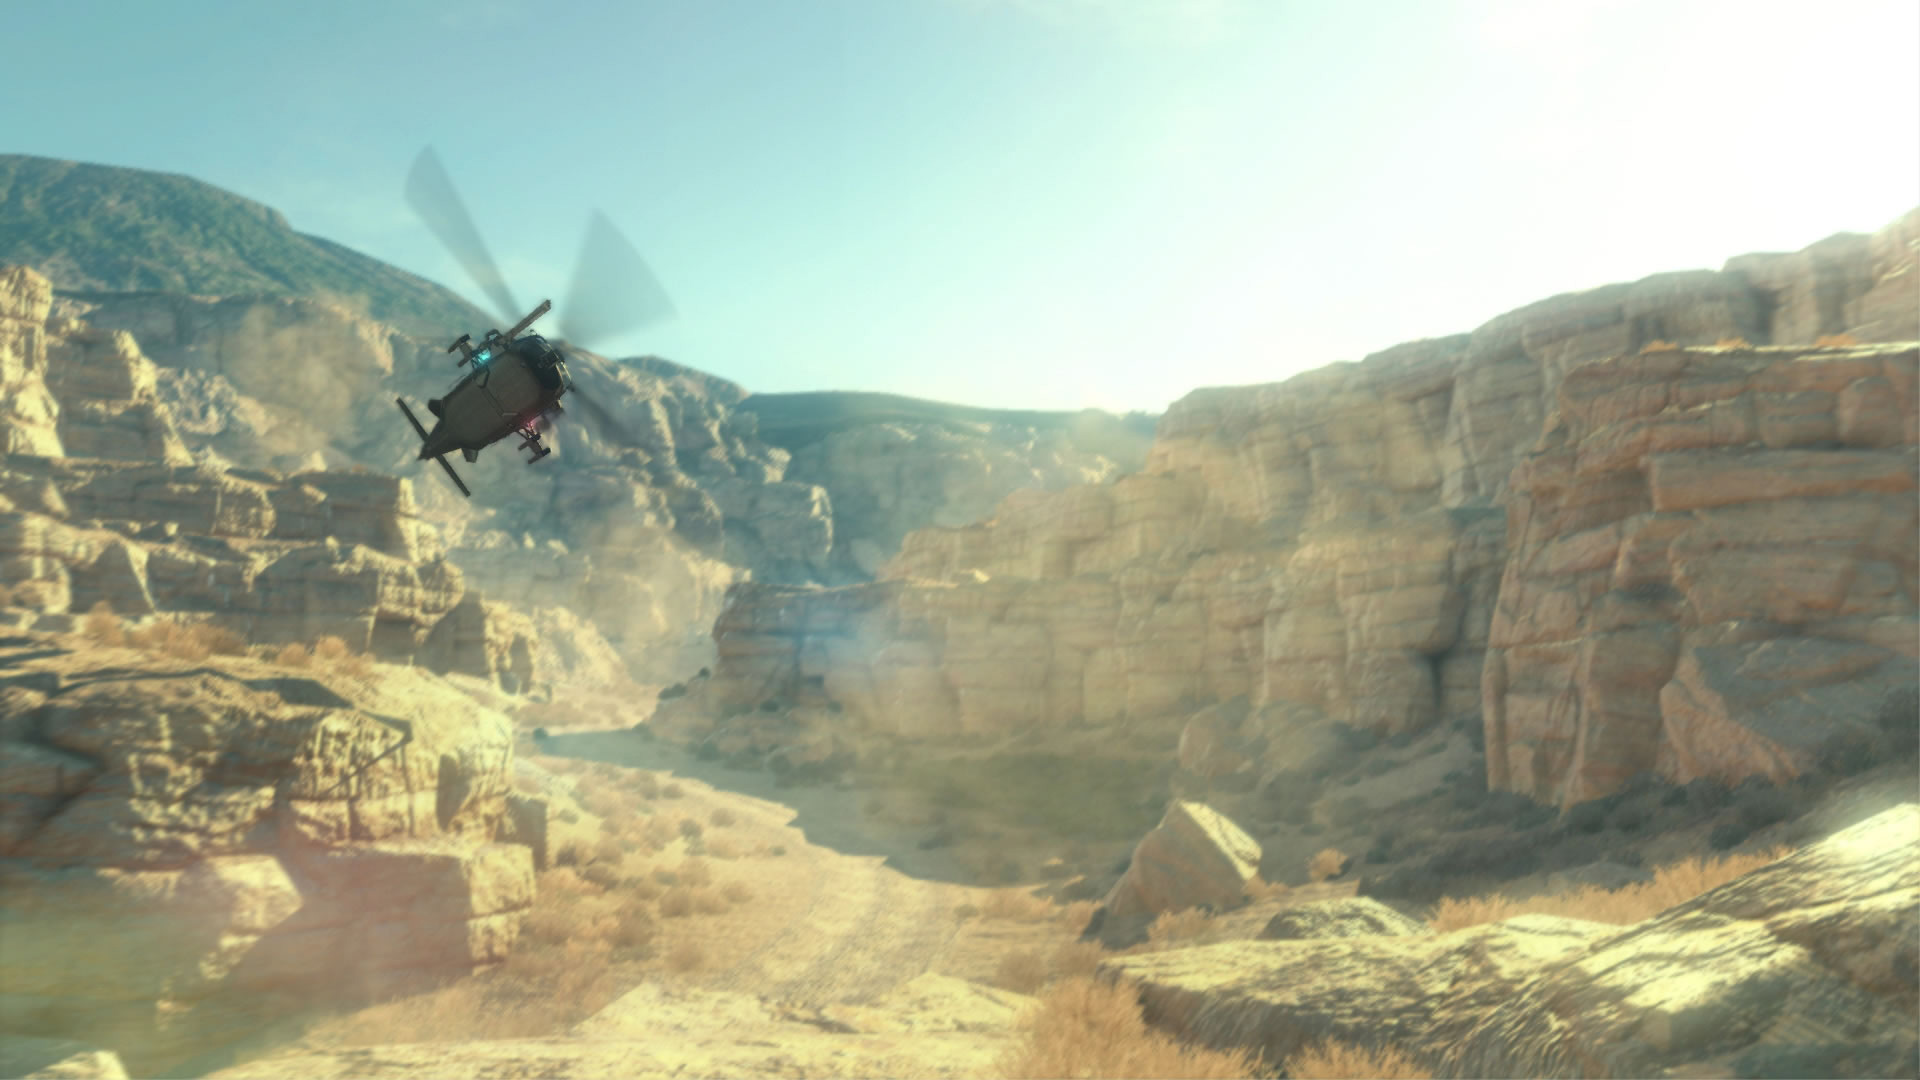 Metal-Gear-Solid-V-The-Phantom-Pain-E3-2015-Screen-Chopper